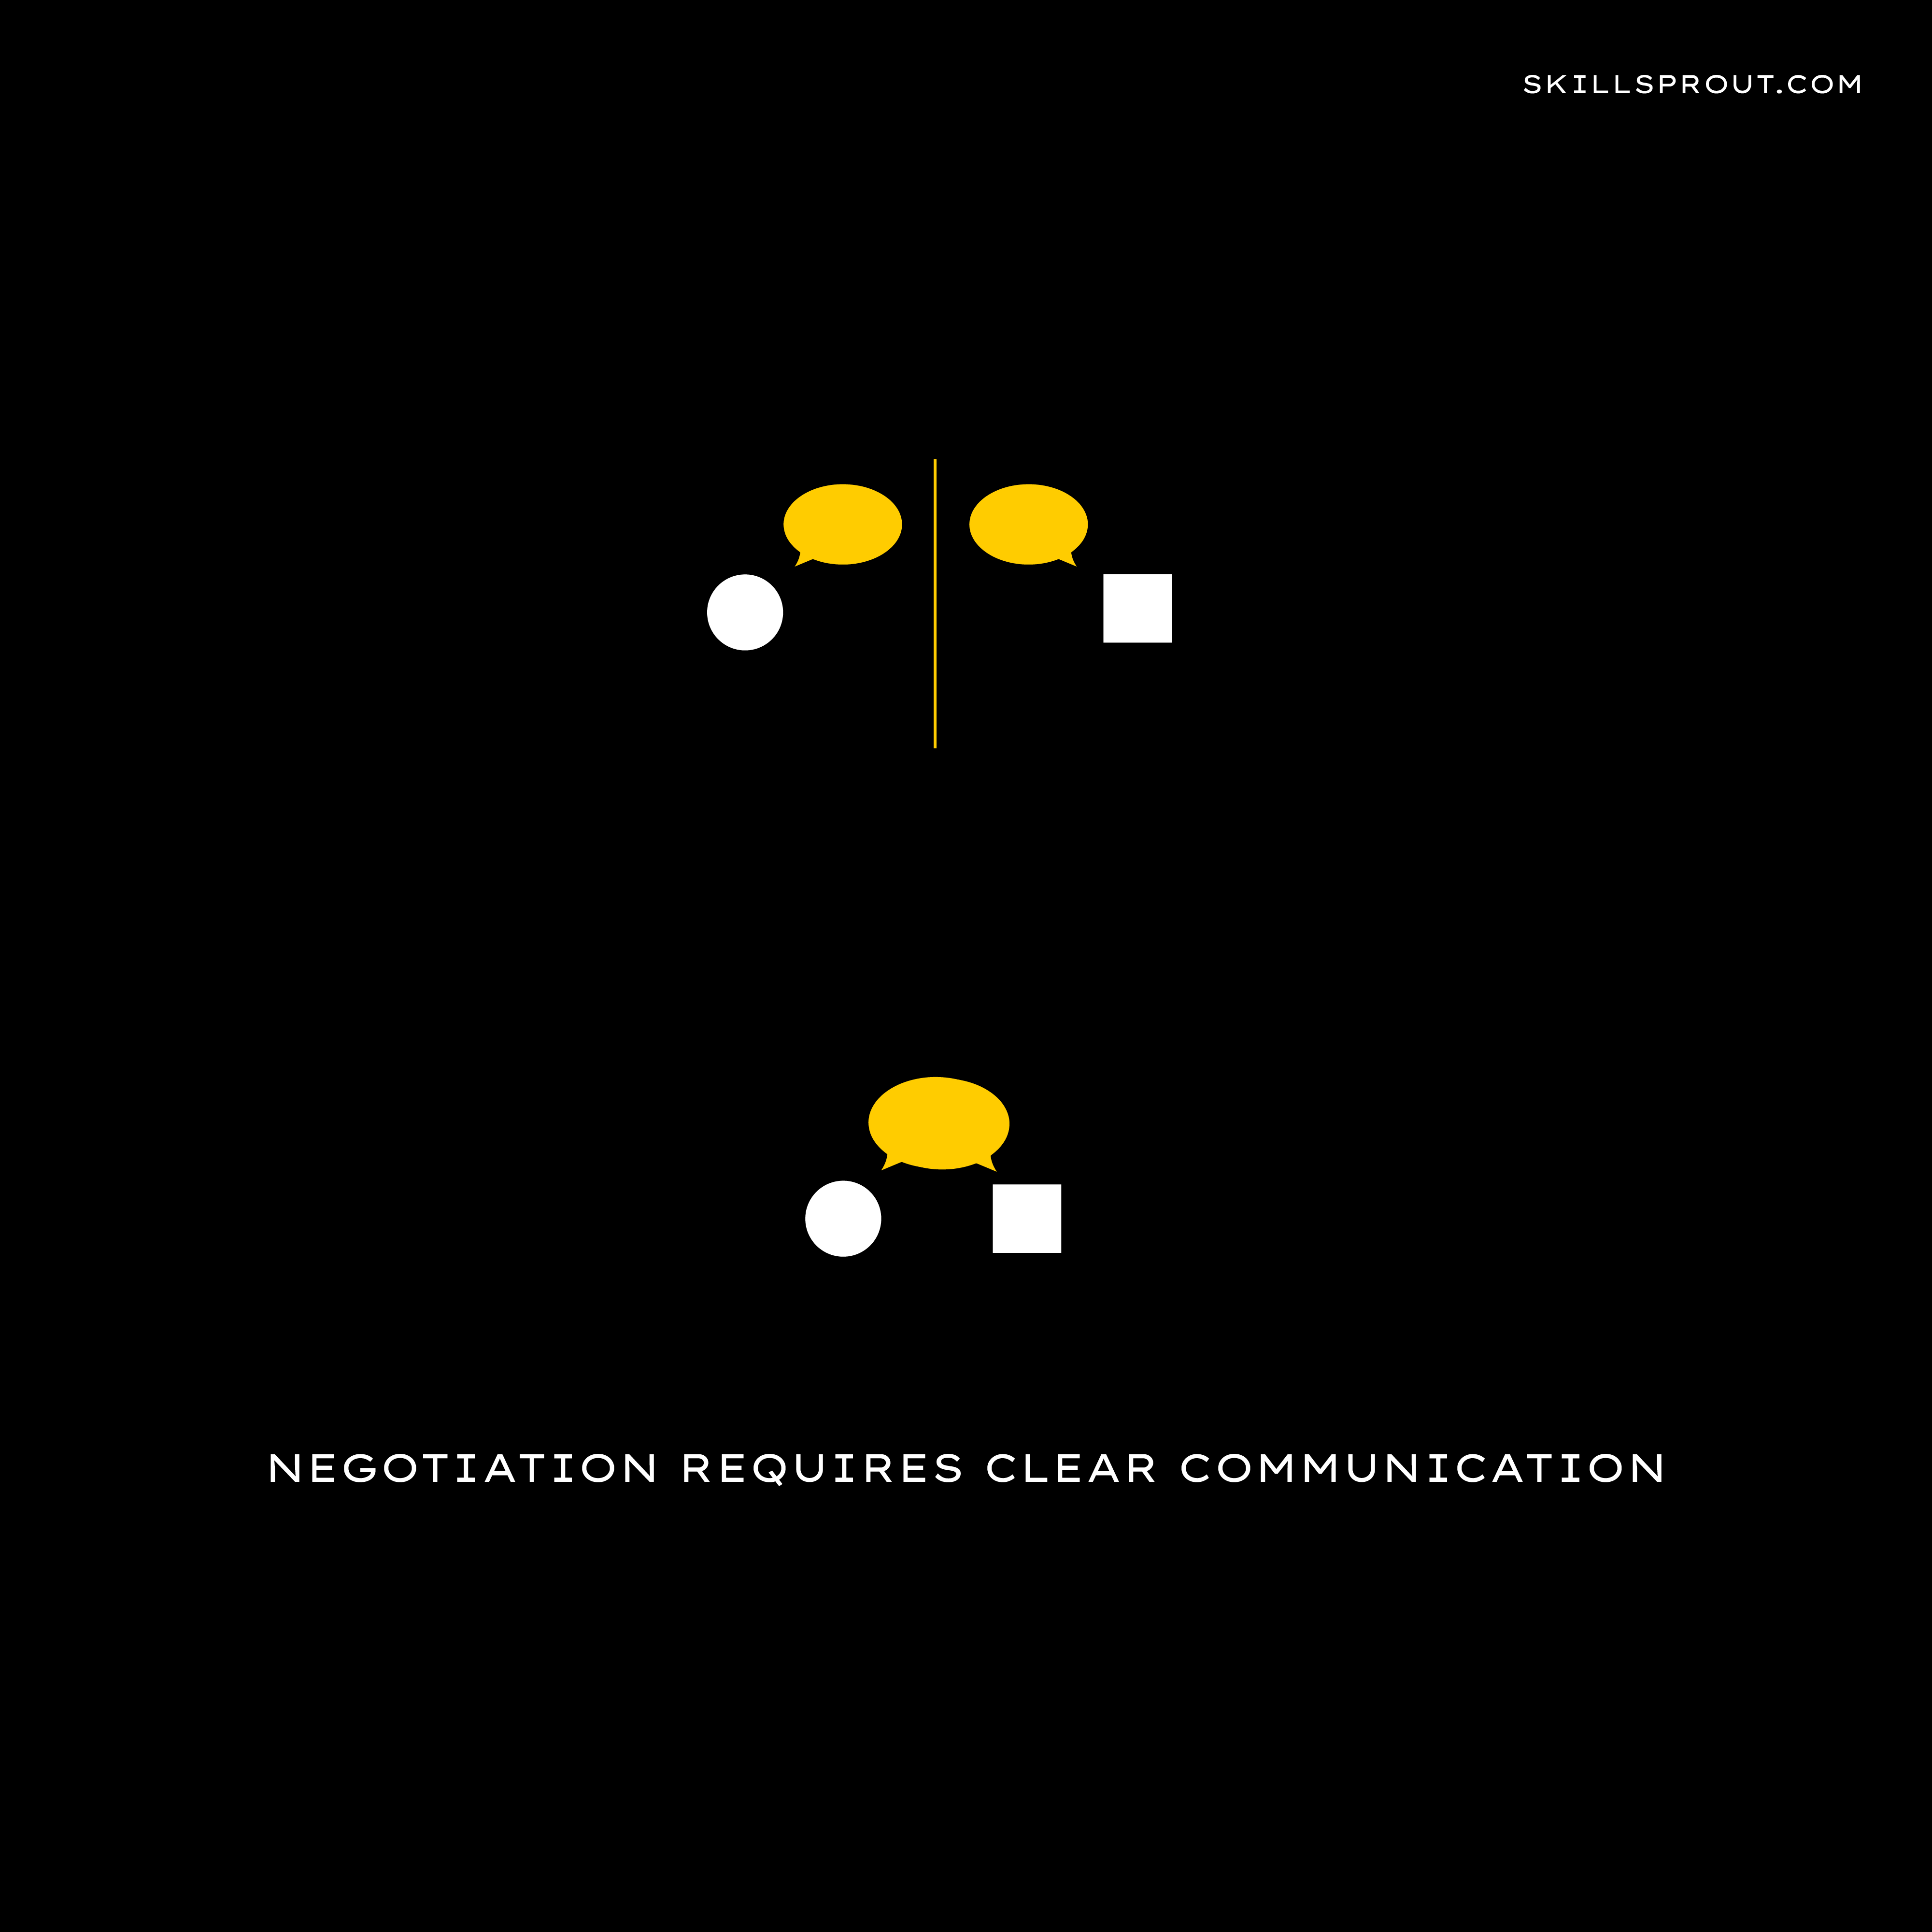 Negotiation requires clear communication